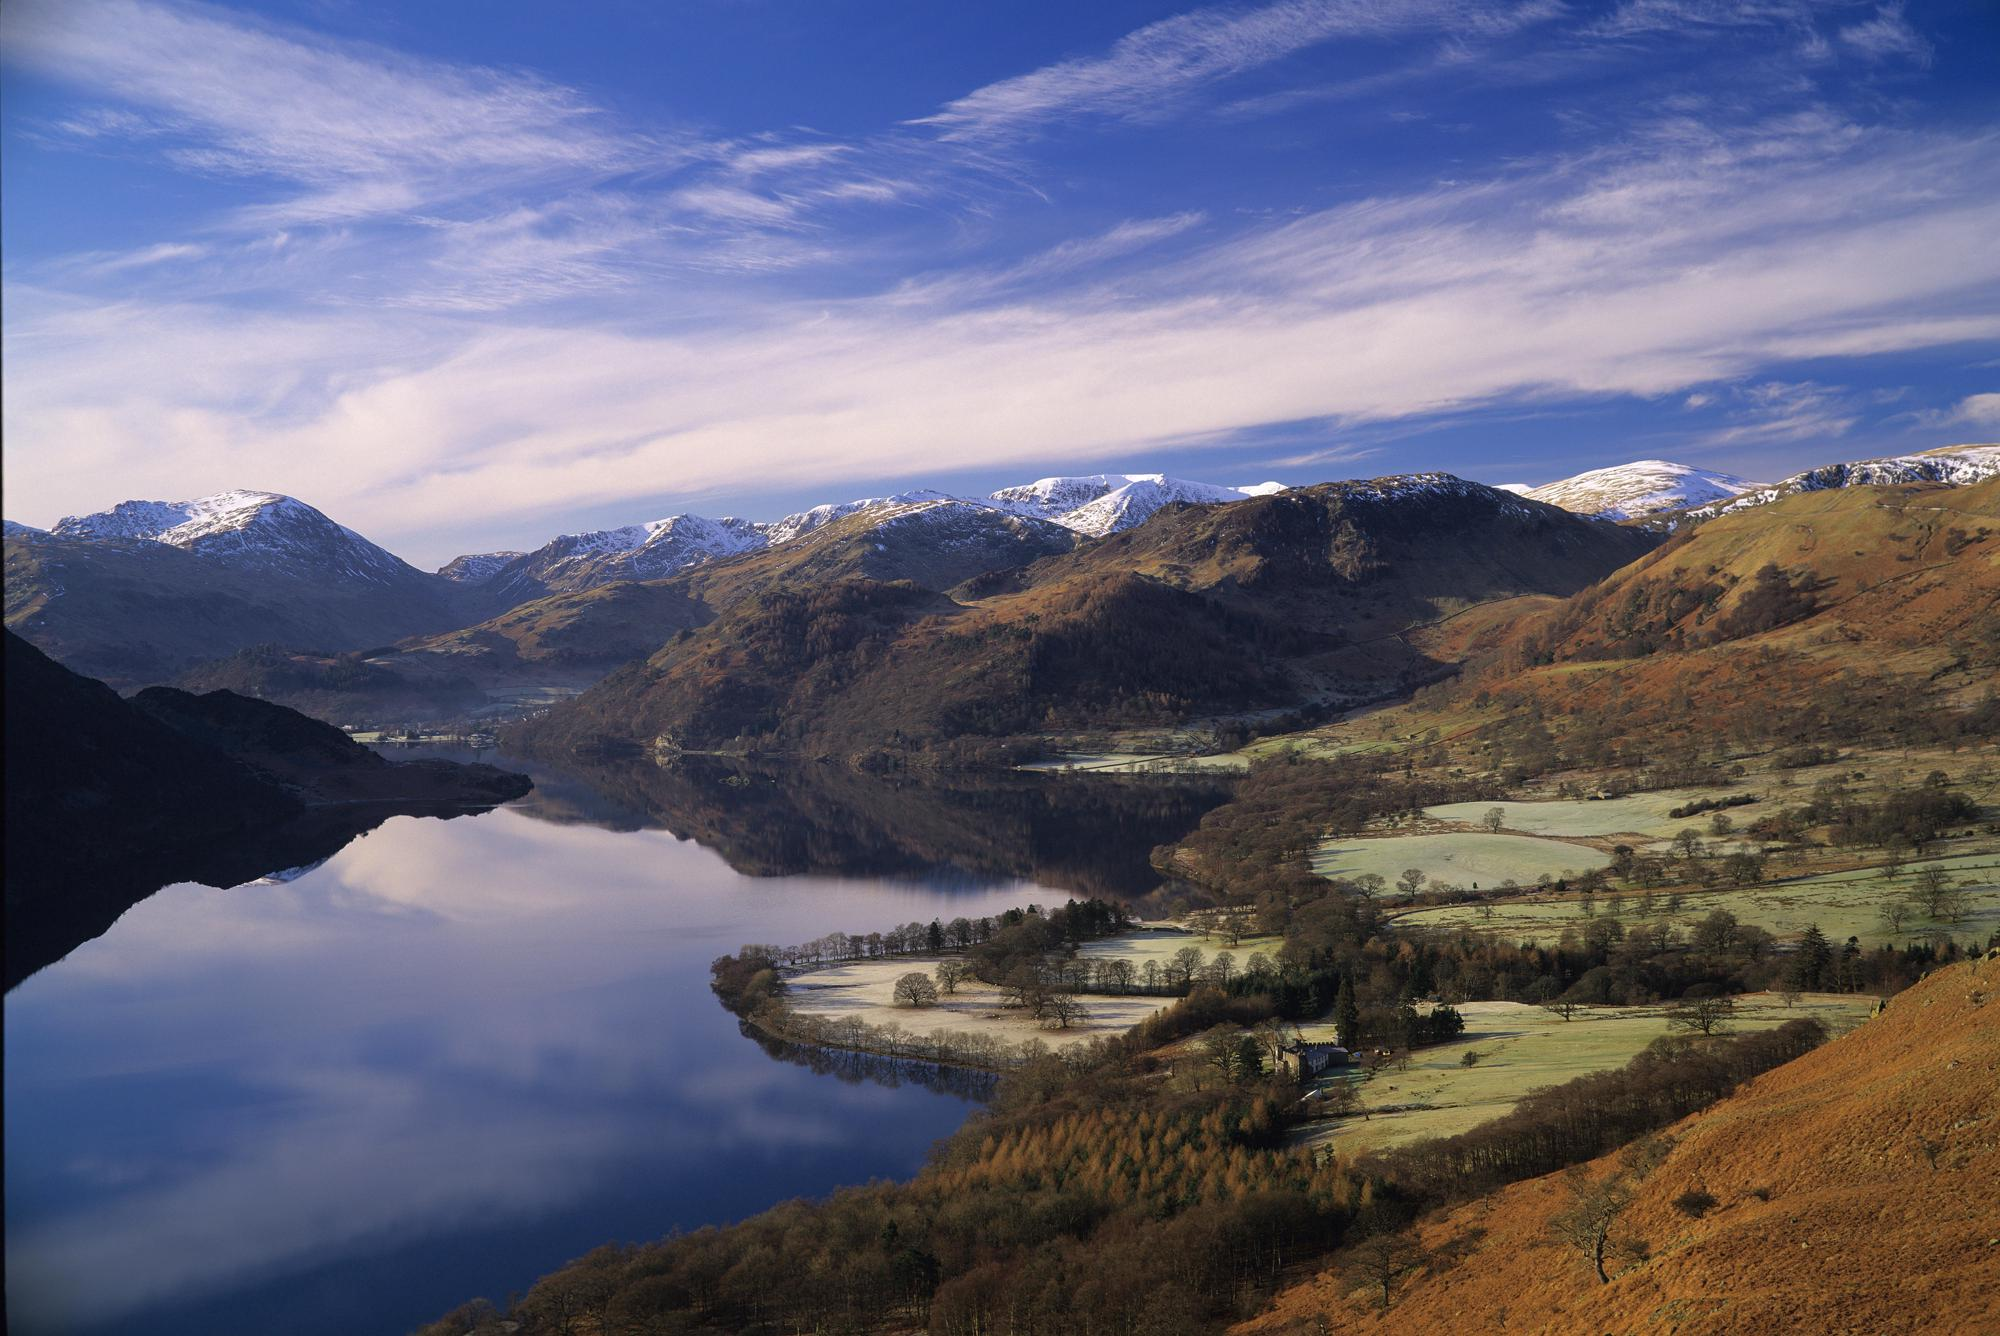 Camping Destinations in the UK and Europe, including prominent national parks across the UK.